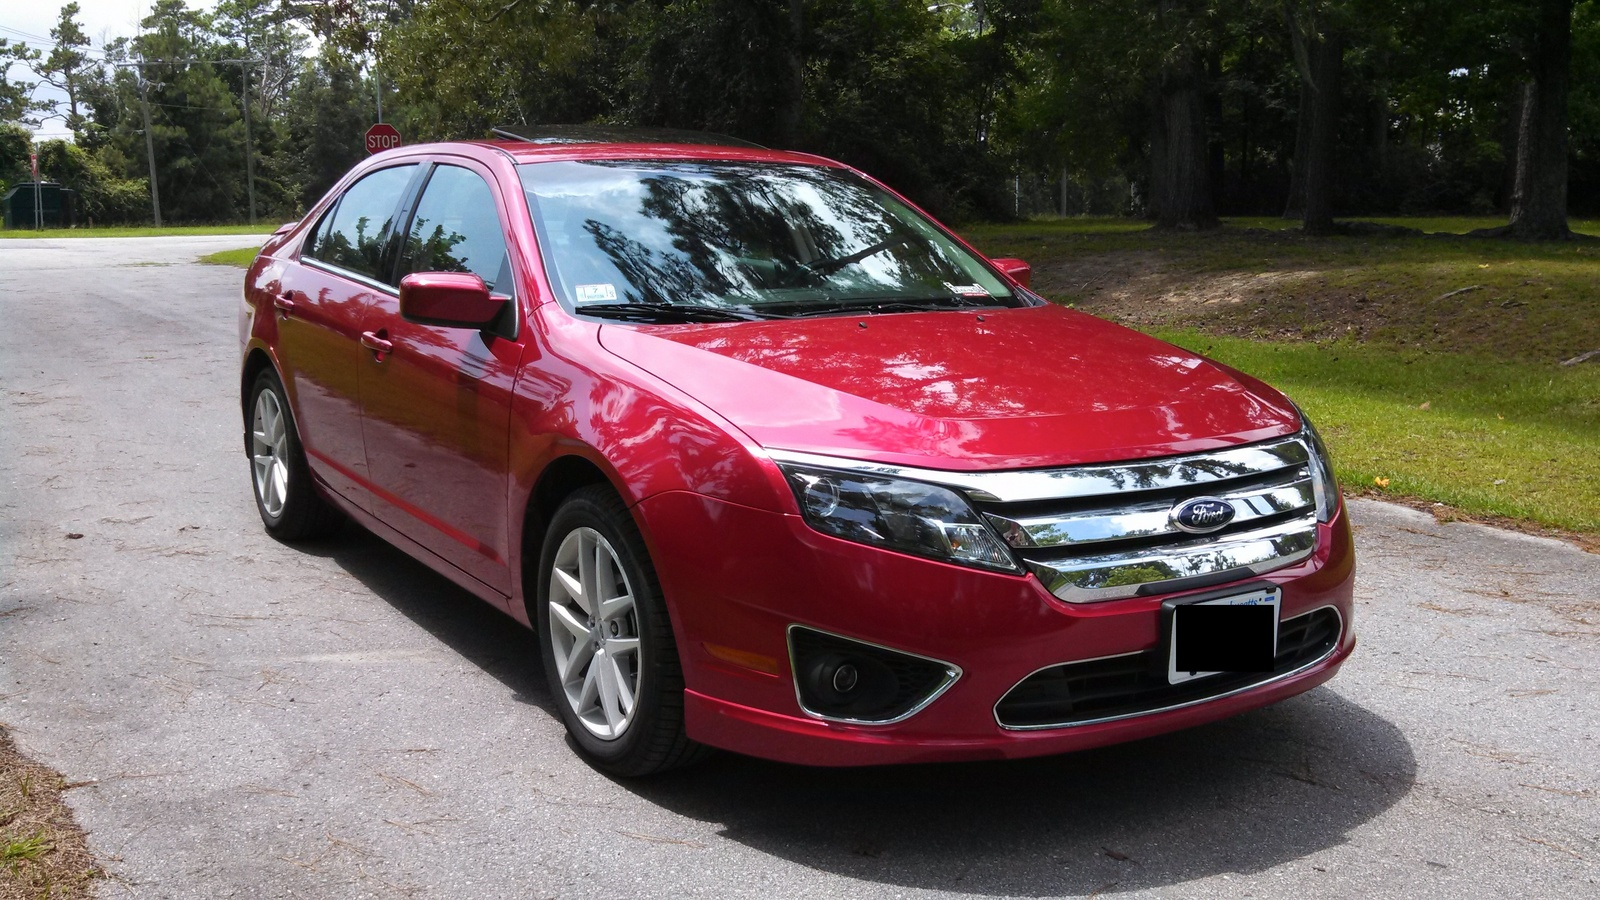 2012 Ford Fusion Pictures Cargurus